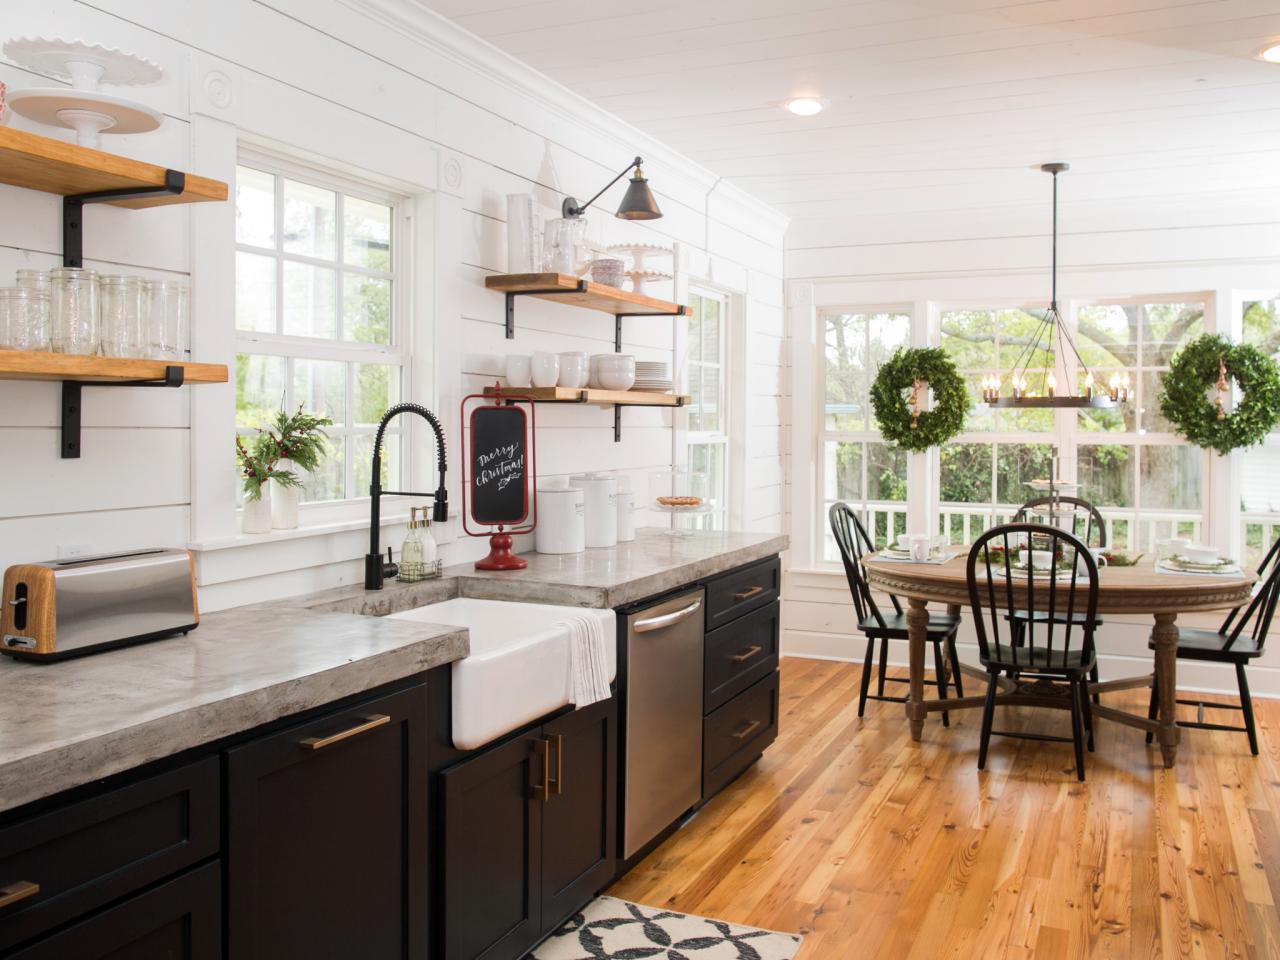 Photos HGTVs Fixer Upper With Chip And Joanna Gaines HGTV